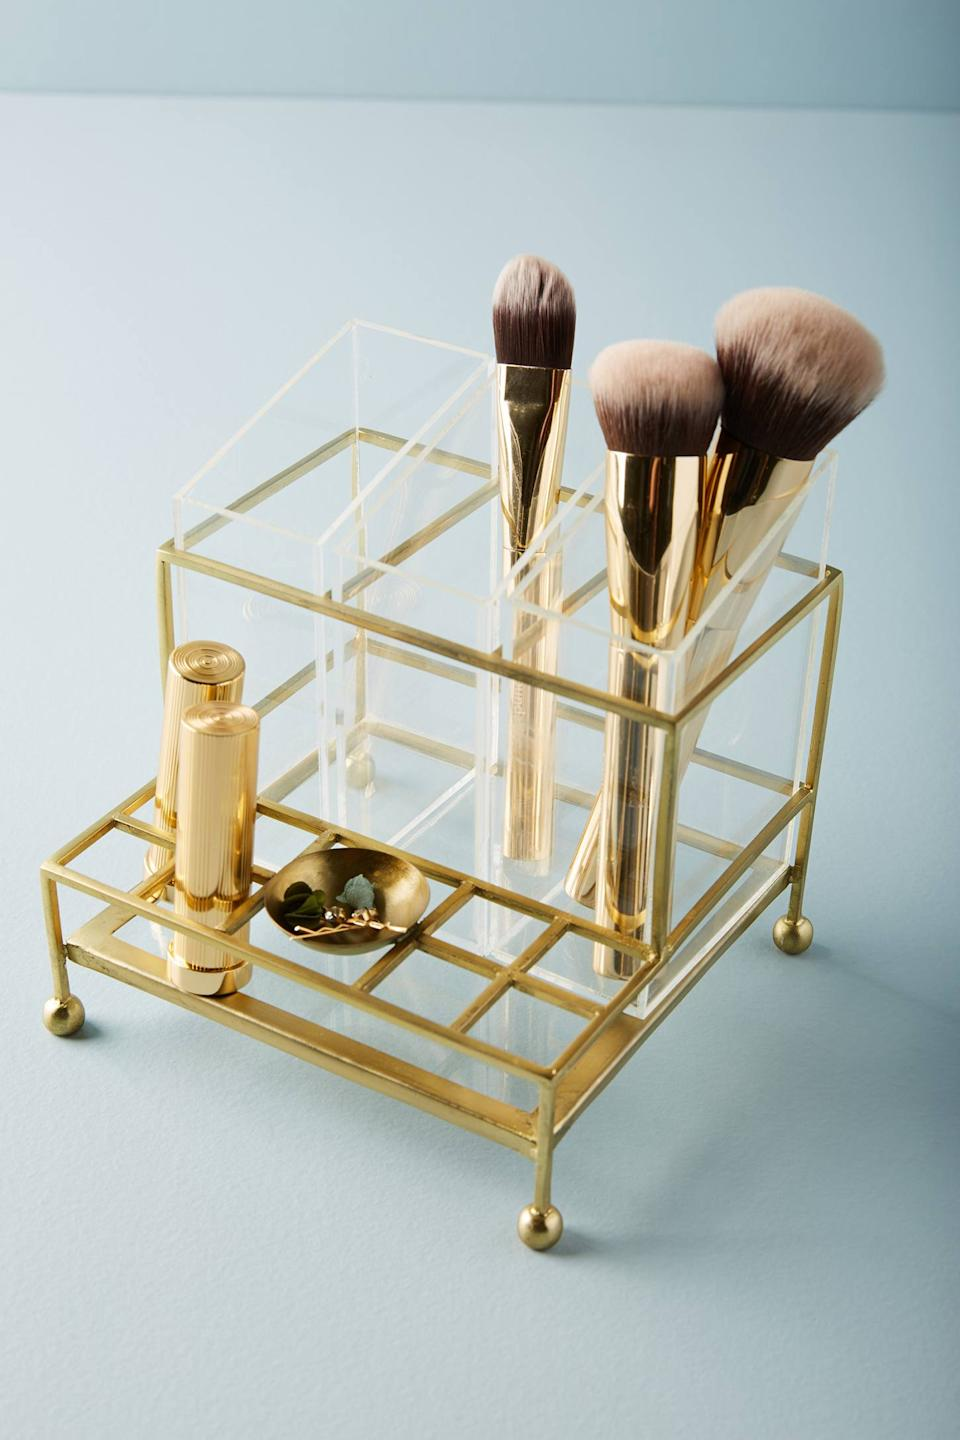 """<h3><a href=""""https://www.anthropologie.com/shop/faceted-vanity-organizer"""" rel=""""nofollow noopener"""" target=""""_blank"""" data-ylk=""""slk:Anthropologie Faceted Vanity Organizer"""" class=""""link rapid-noclick-resp"""">Anthropologie Faceted Vanity Organizer</a> </h3><br><br>It's no secret that Virgos love organization, and a chic brass makeup and brush holder is the best way to ensure that tools and cosmetics are where they're supposed to be.<br><br><strong>Anthropologie</strong> Faceted Vanity Organizer, $, available at <a href=""""https://go.skimresources.com/?id=30283X879131&url=https%3A%2F%2Fwww.anthropologie.com%2Fshop%2Ffaceted-vanity-organizer"""" rel=""""nofollow noopener"""" target=""""_blank"""" data-ylk=""""slk:Anthropologie"""" class=""""link rapid-noclick-resp"""">Anthropologie</a>"""